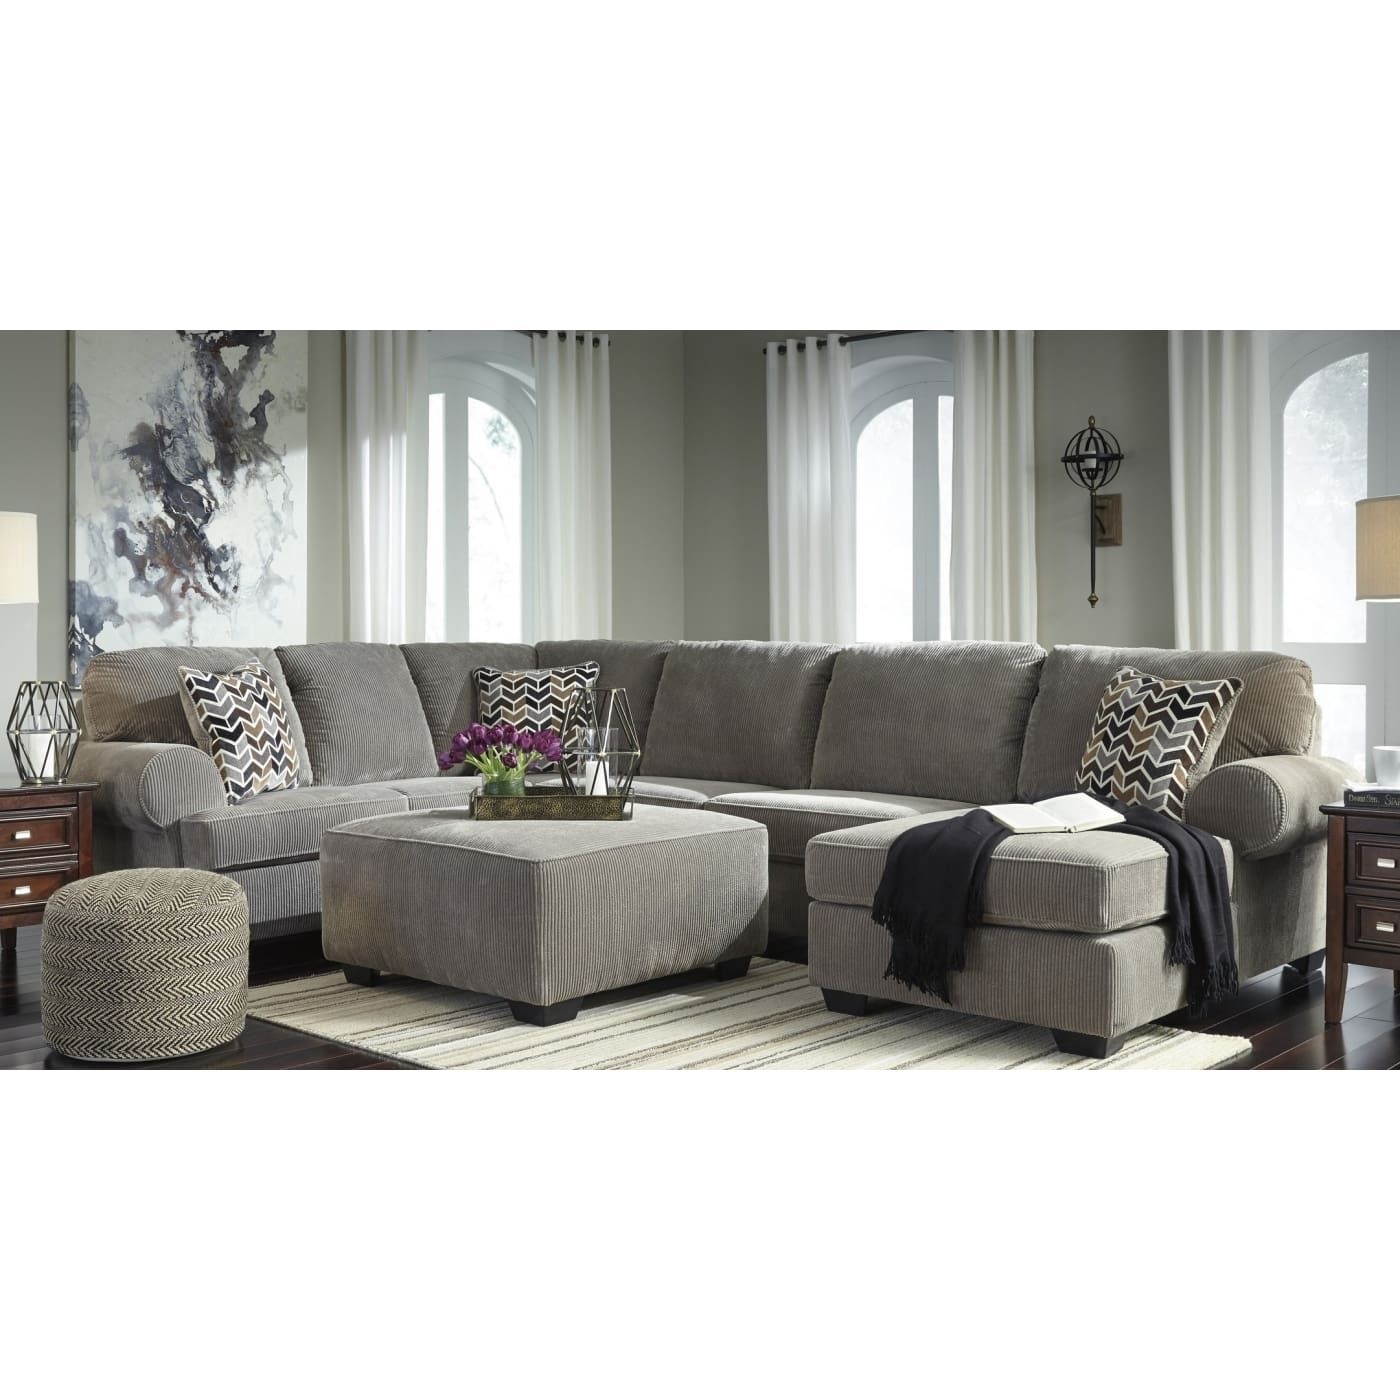 Best Signature Design By Ashley Jinllingsly Gray 4 Piece Living 400 x 300